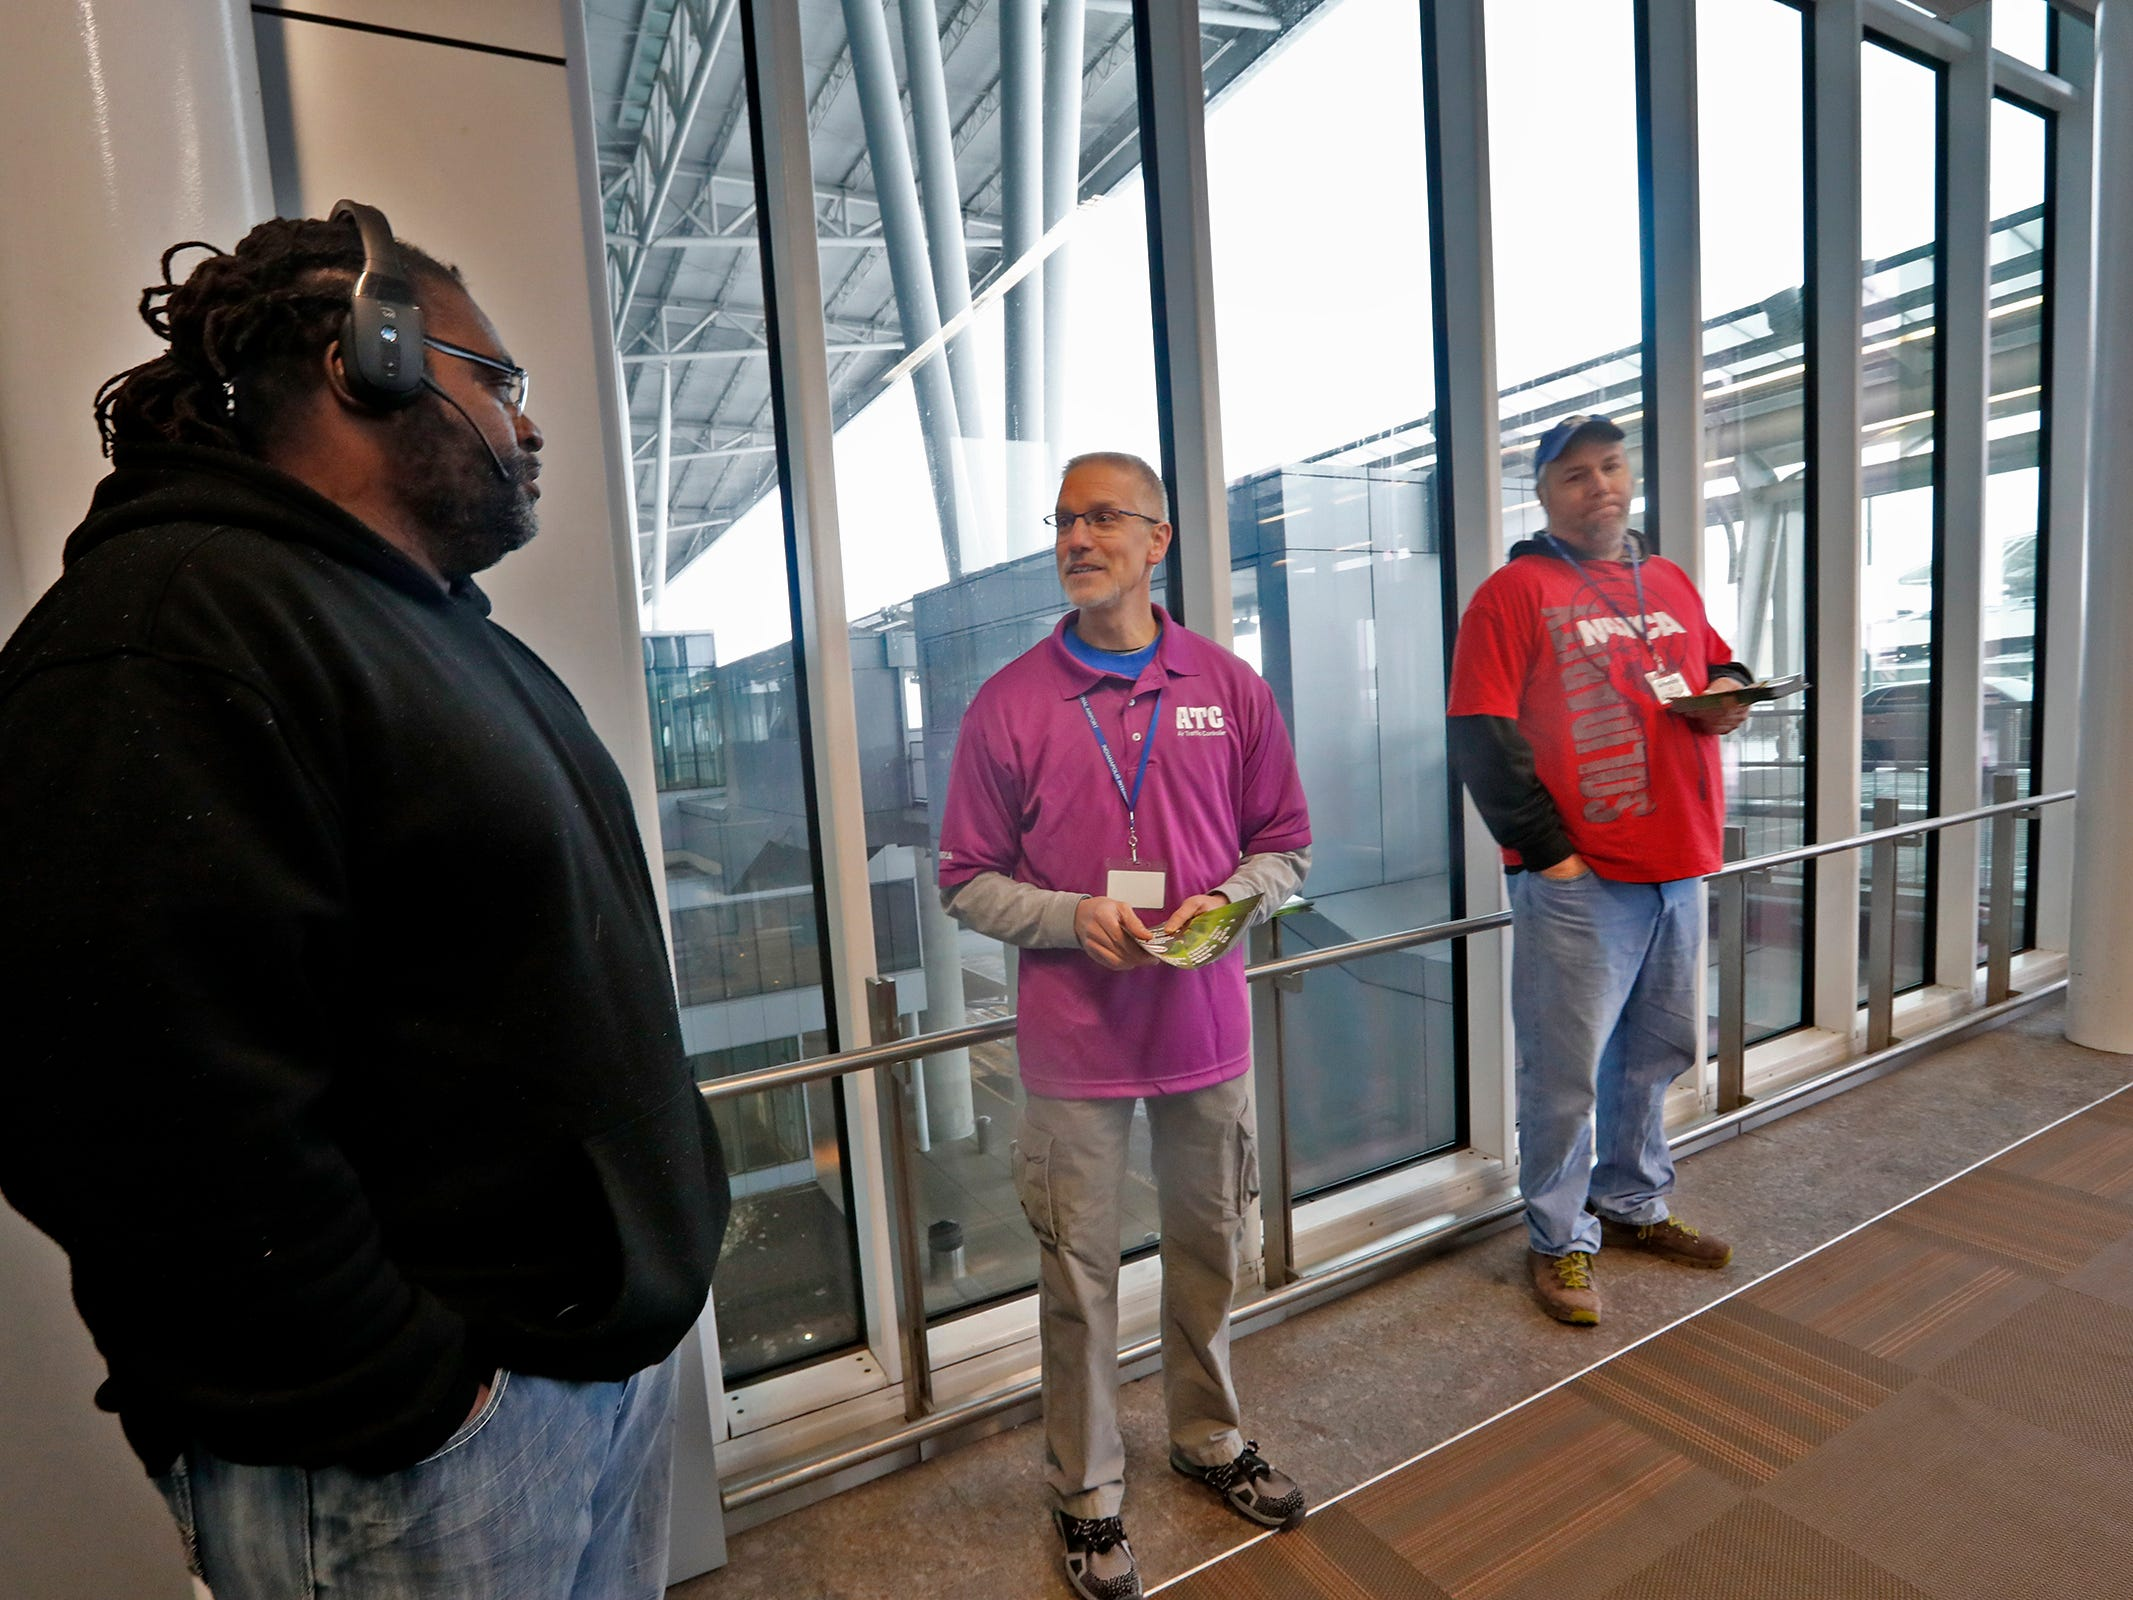 "Roger Bell, left, talks with Air Traffic Control Specialist Mark Wittmayer, center, at the Indianapolis International Airport, Tuesday, Jan. 15, 2019.  Members of the National Air Traffic Controllers Association (NATCA) handed out the pamphlets to travelers to ask for the end of the government shutdown and to list ways the shutdown has affected the aviation safety.  Everyone wants safe borders says Wittmayer, but ""right now it's about paying the bills so that we can put food on the table for our families."""